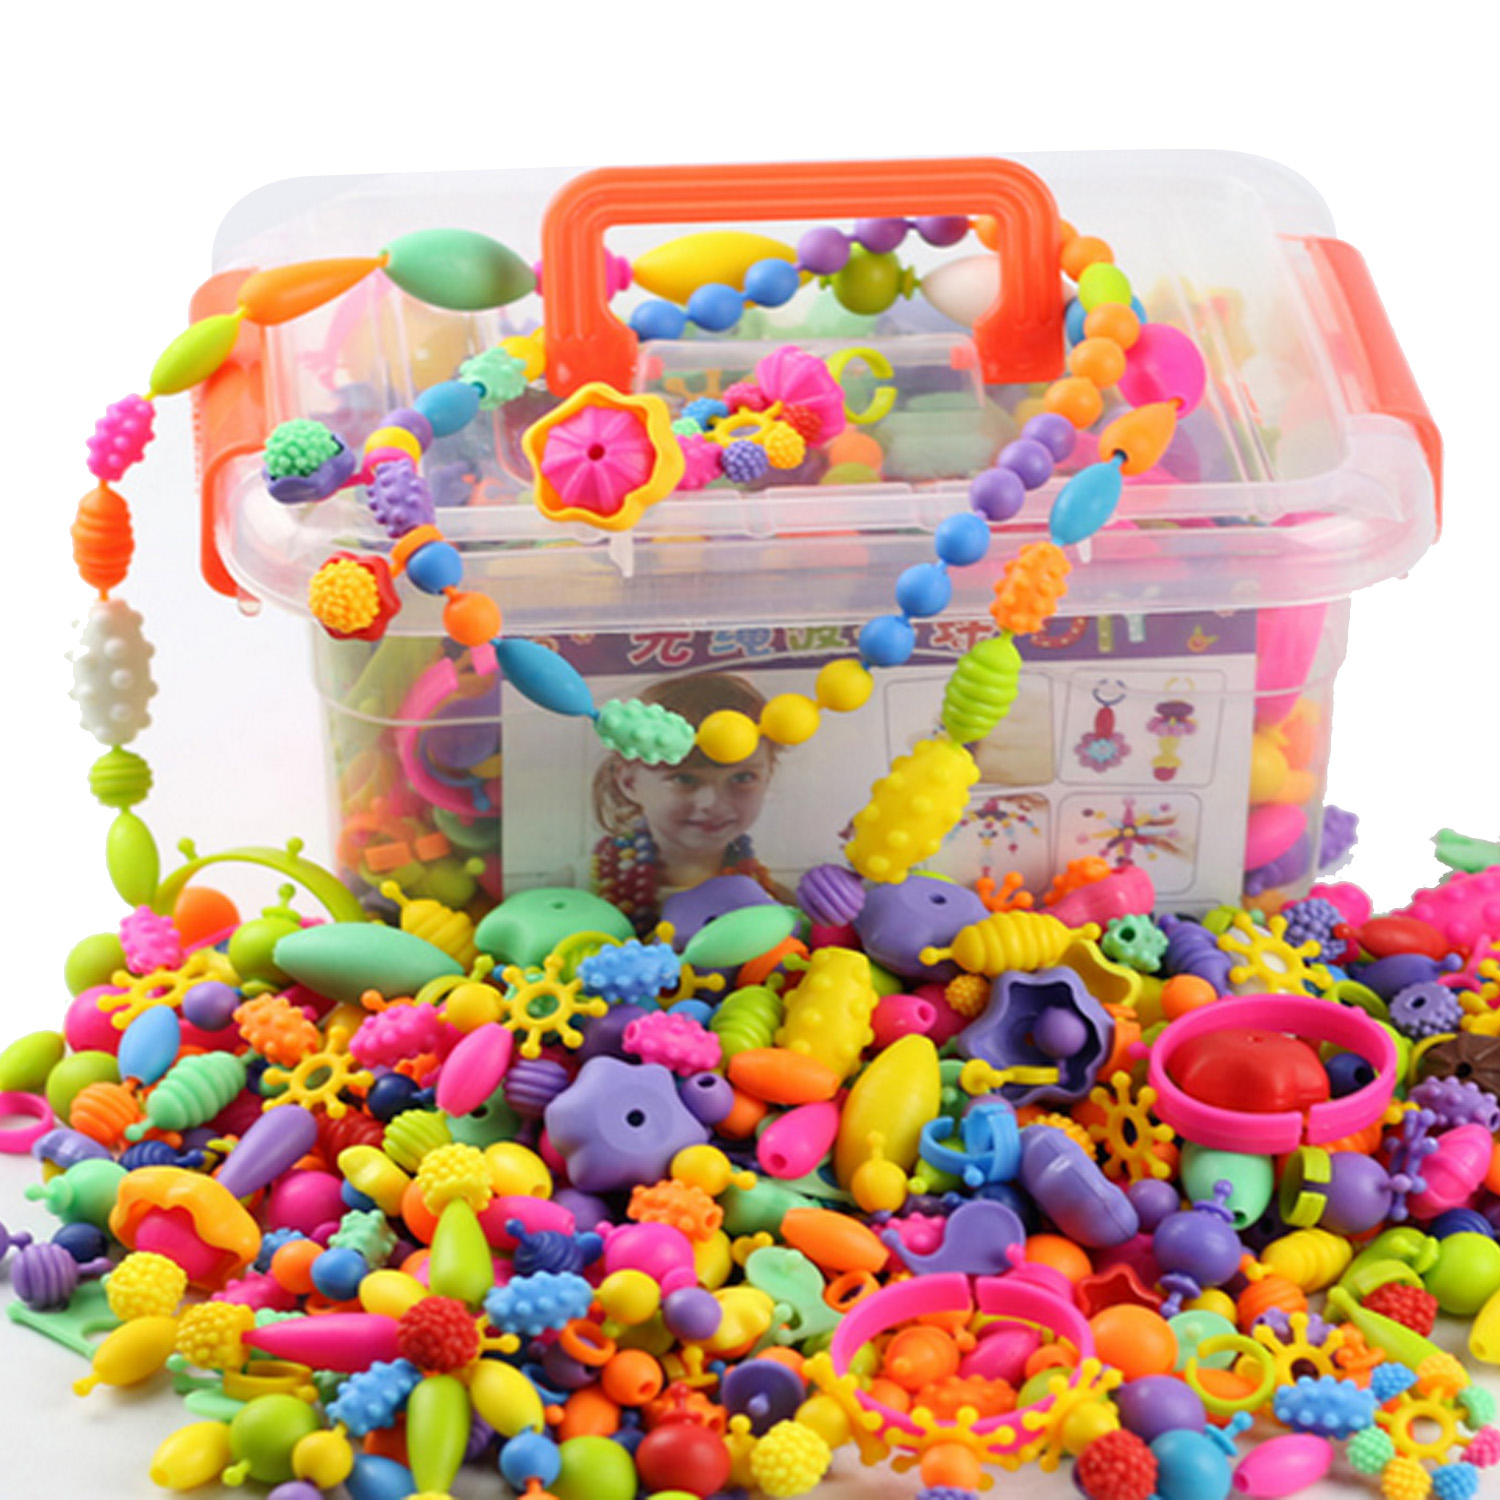 Besegad 485Pcs Funny Cute Colorful Assorted Shapes Plastic Pop Snap Beads Set Kids Girls Toys Gifts DIY Manual Necklaces Making